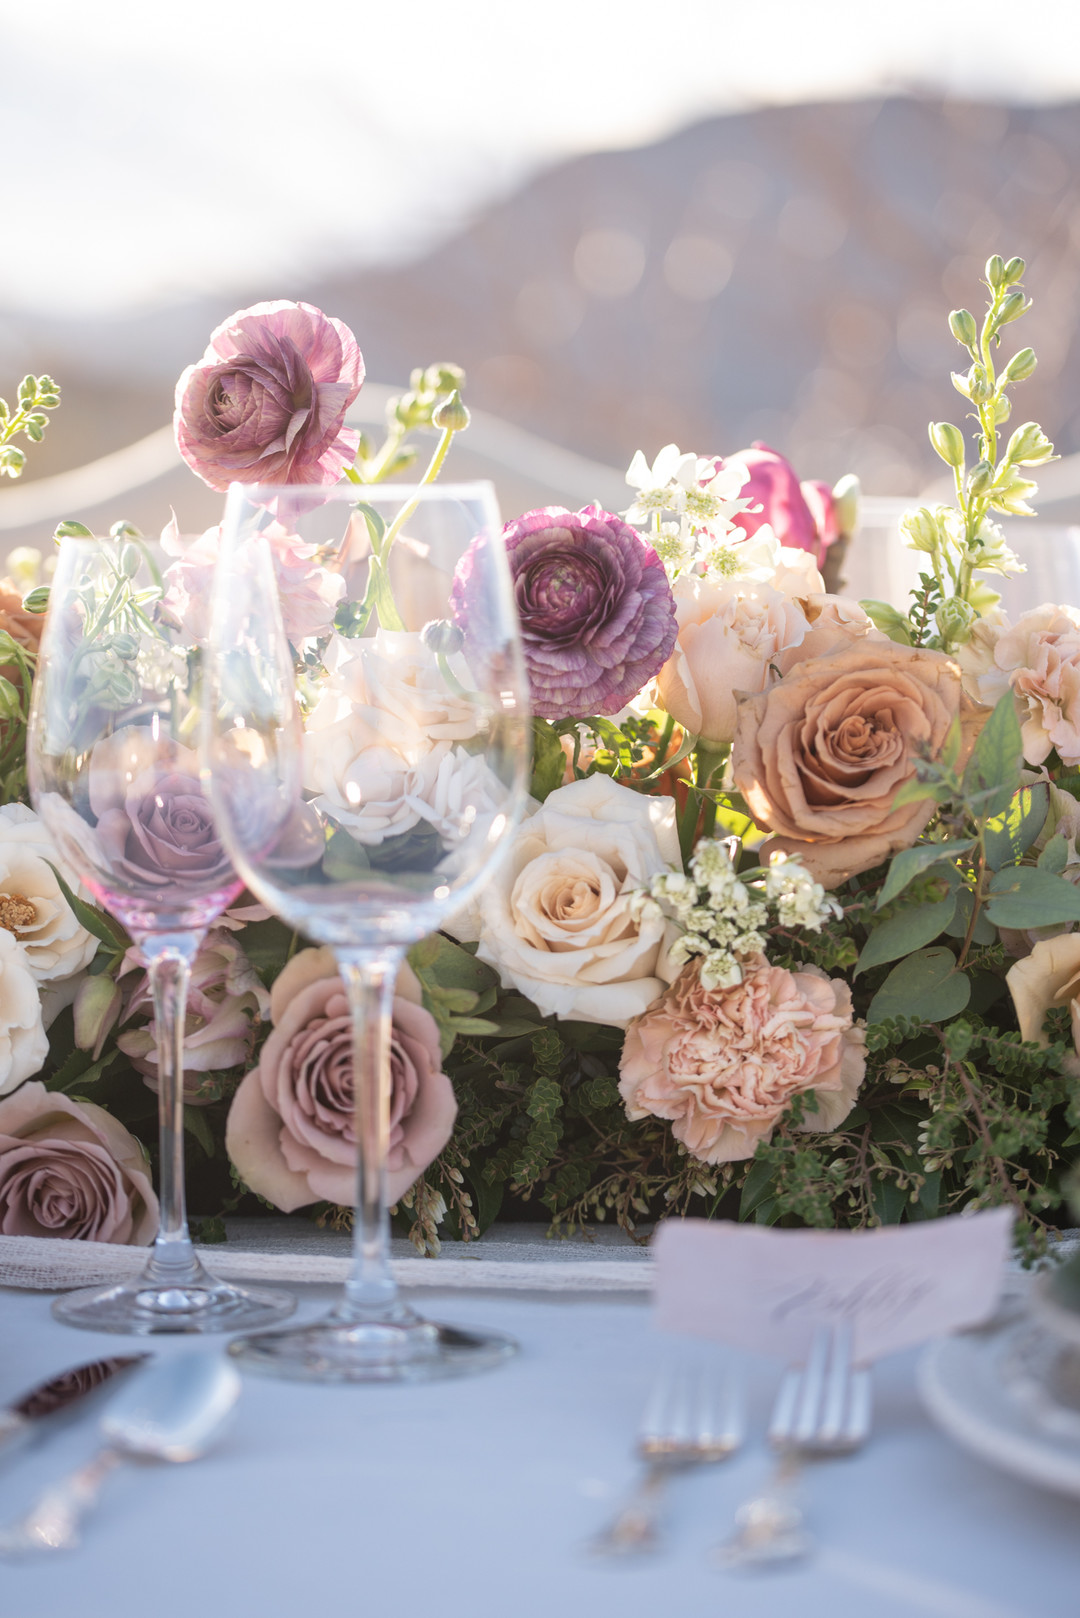 garden roses on table with wine glasses